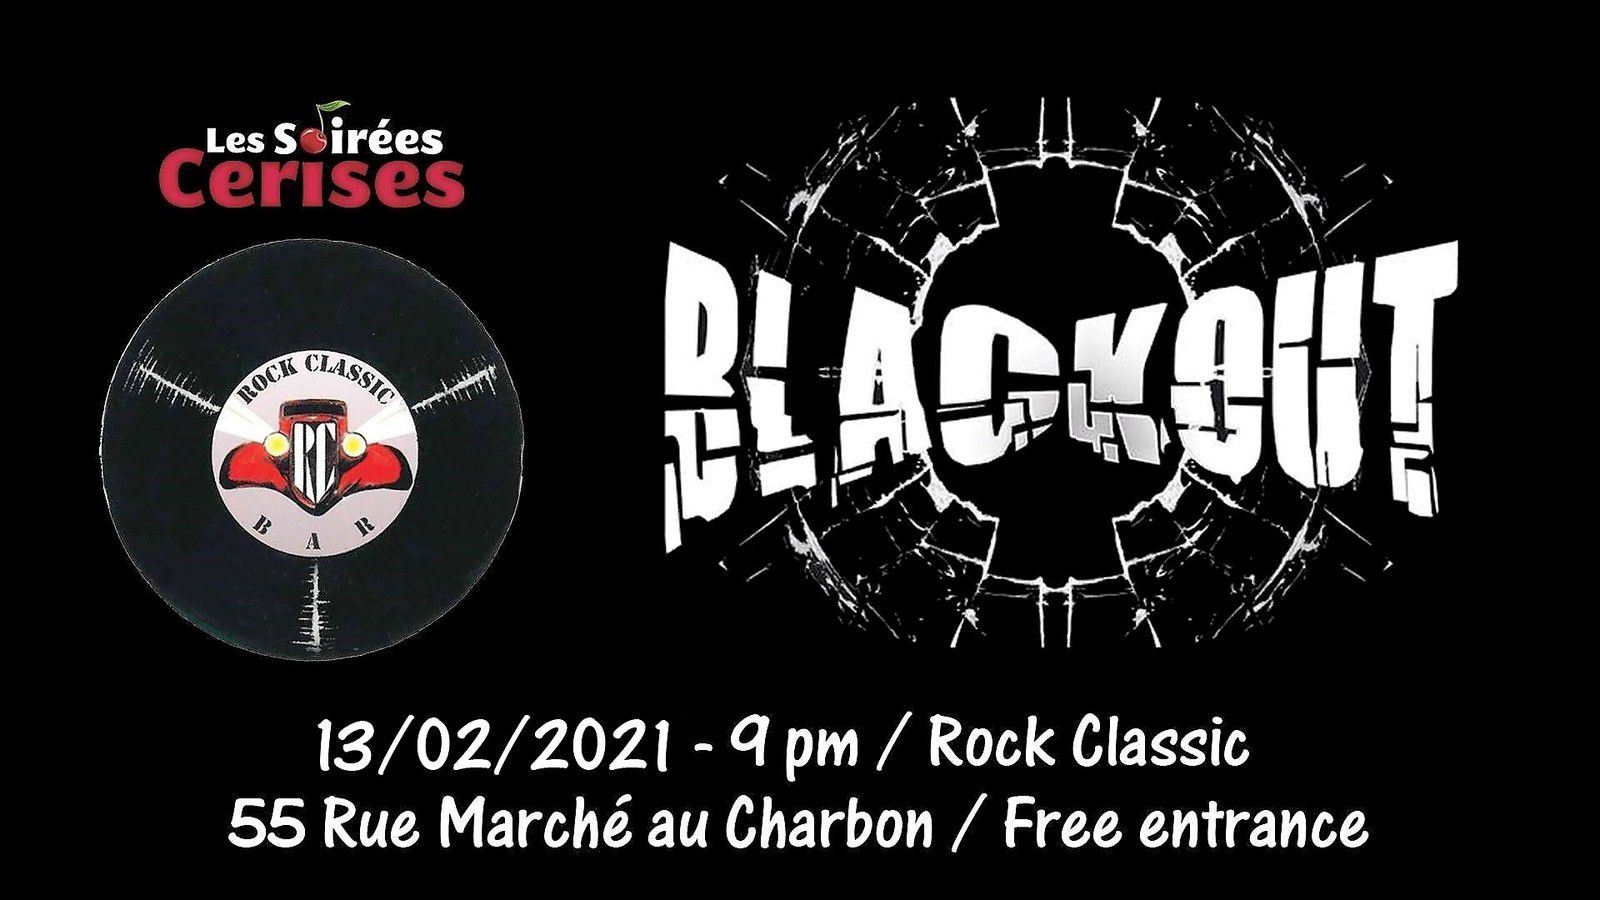 🎵 Blackout (Covers Hard rock 70/80's) @ Rock Classic - 13/02/2021 - 21h00 - Entrée gratuite !